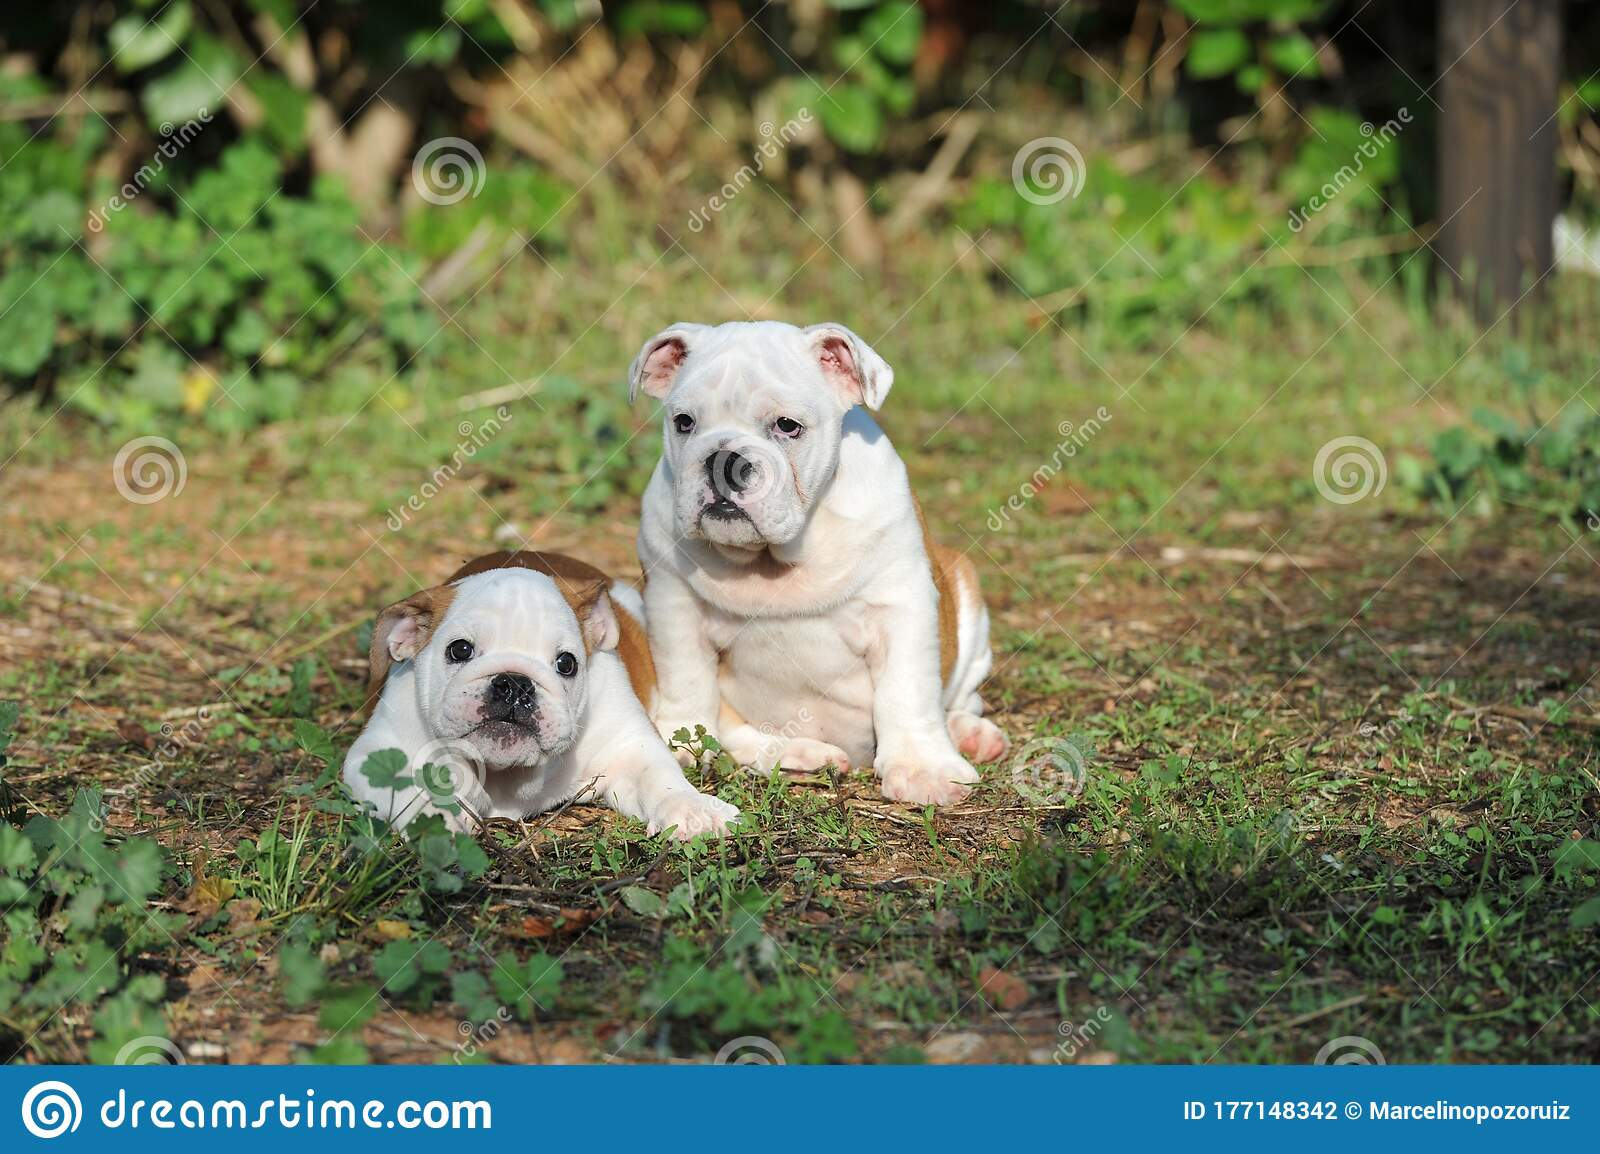 Two Cute English Bulldog Puppy Purebred Dog On The Grass In The Park Stock Photo Image Of Doggy Friends 177148342